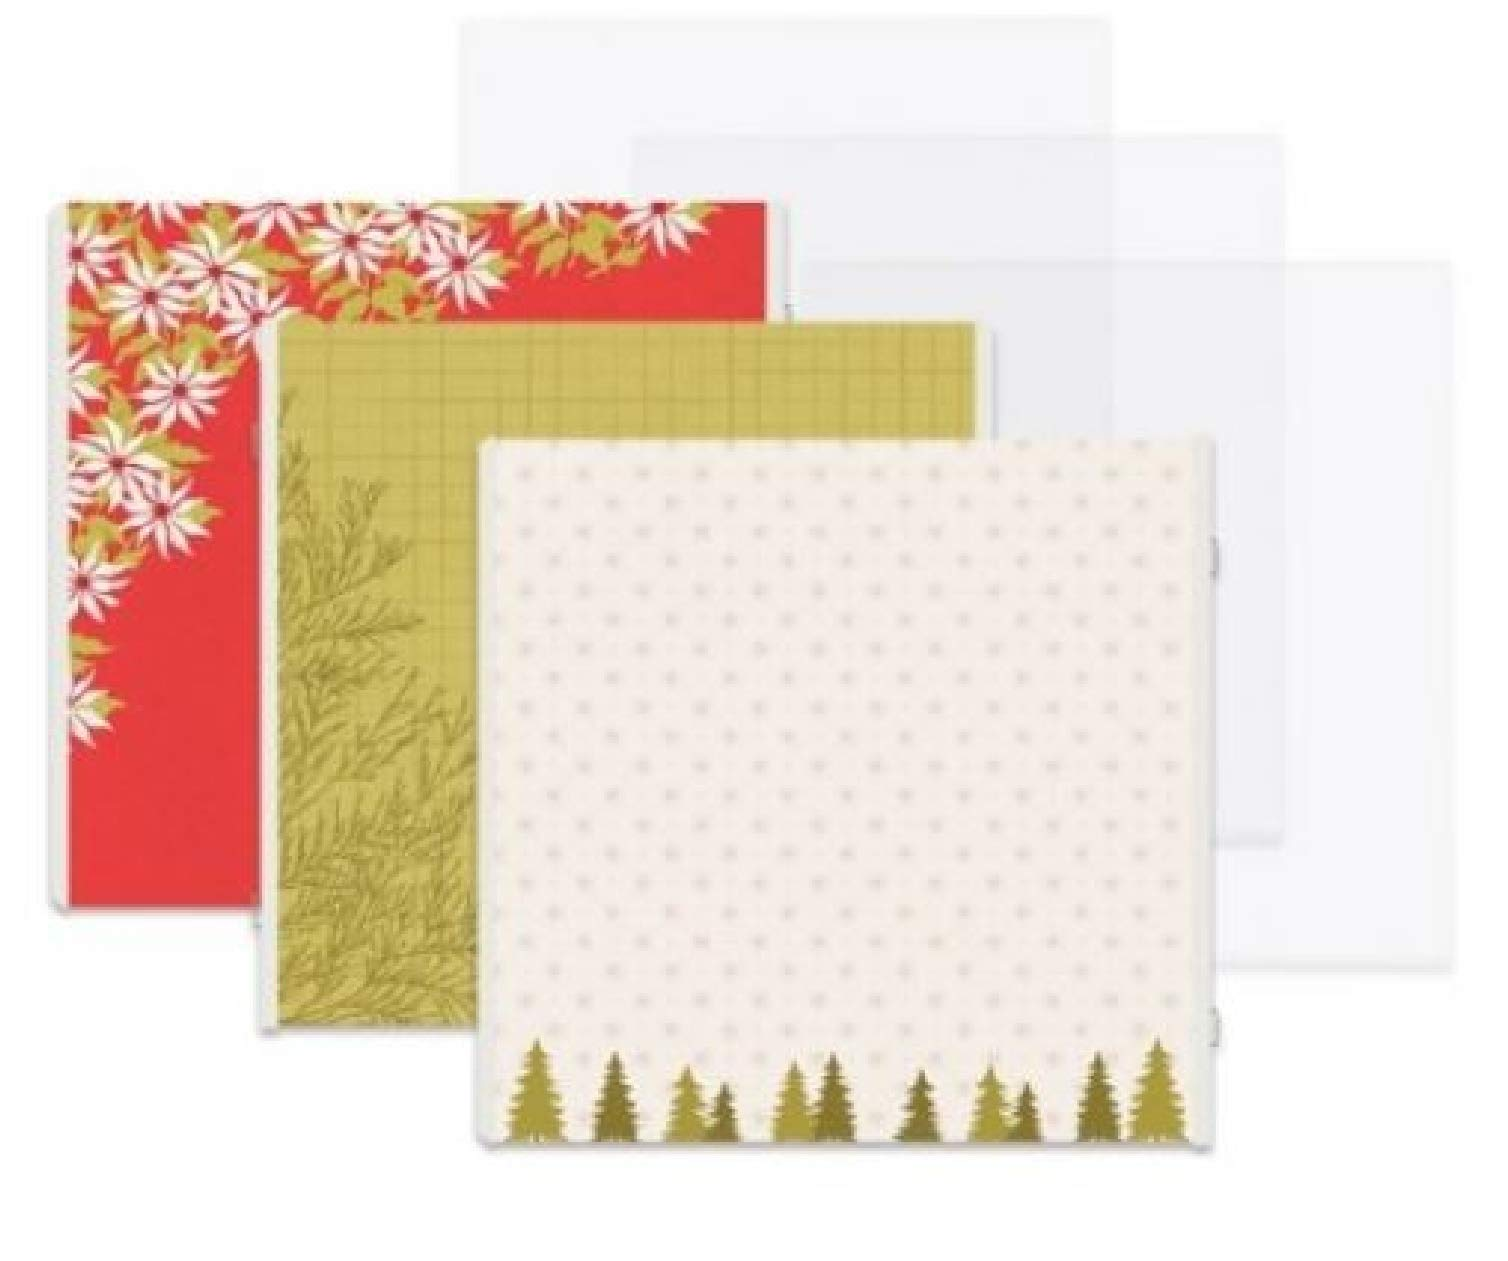 12x12 Antique Red Season's Greeting Christmas Fast2Fab Decorated Refill Pages by Creative Memories 16/pk